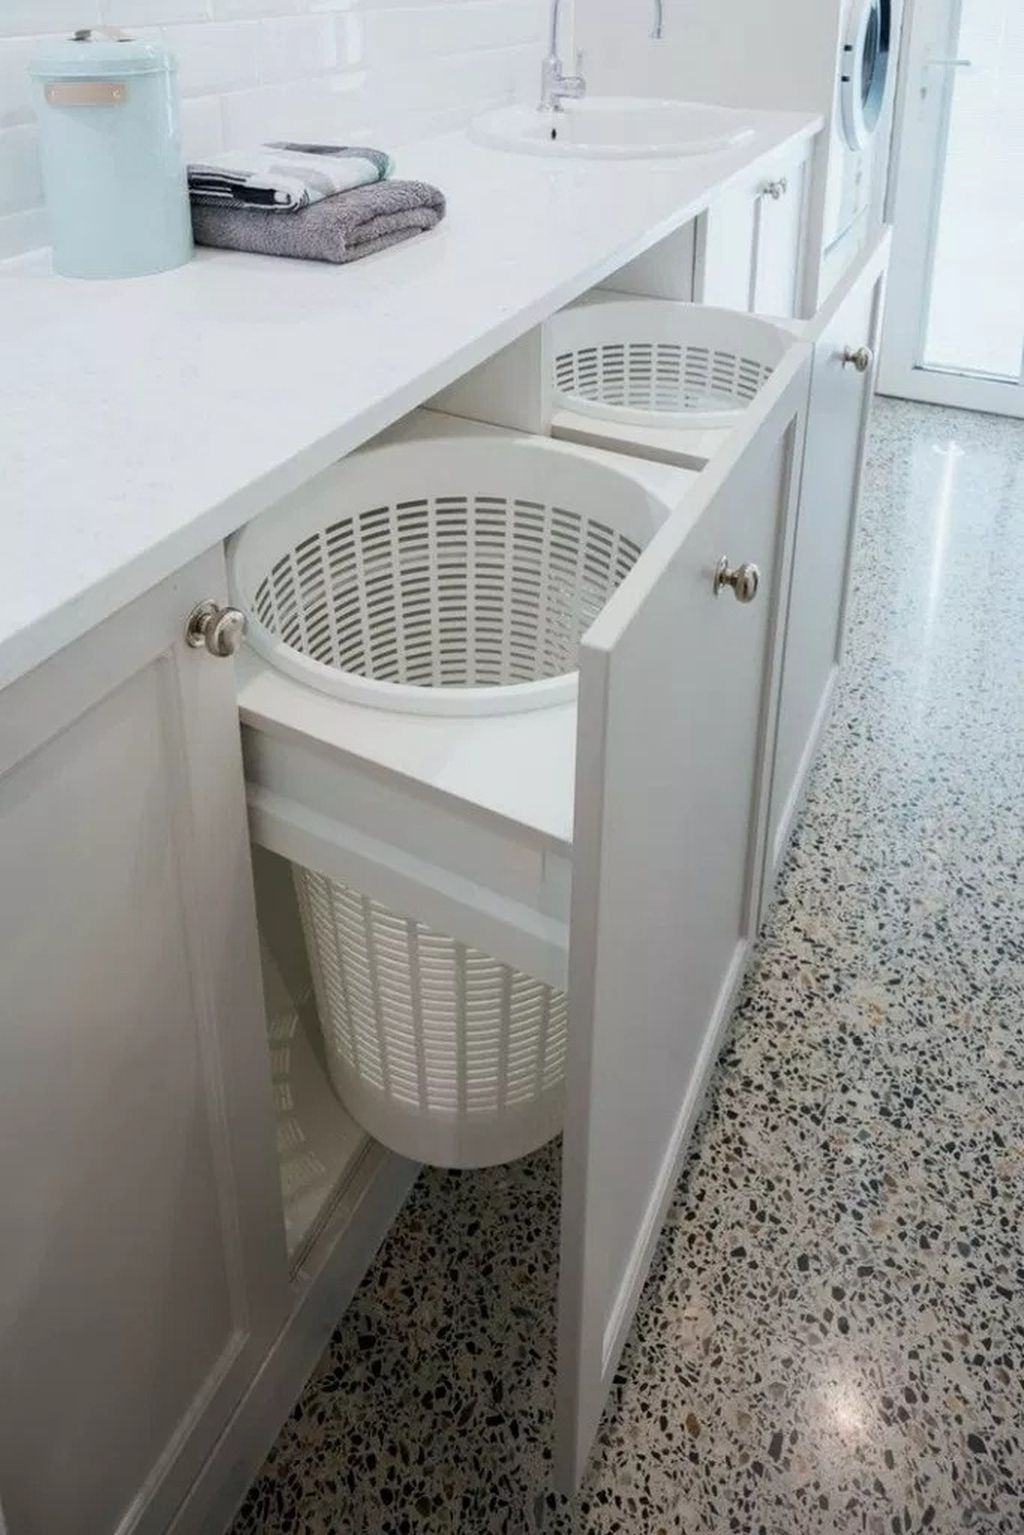 Favored Laundry Room Organization Ideas To Try 08